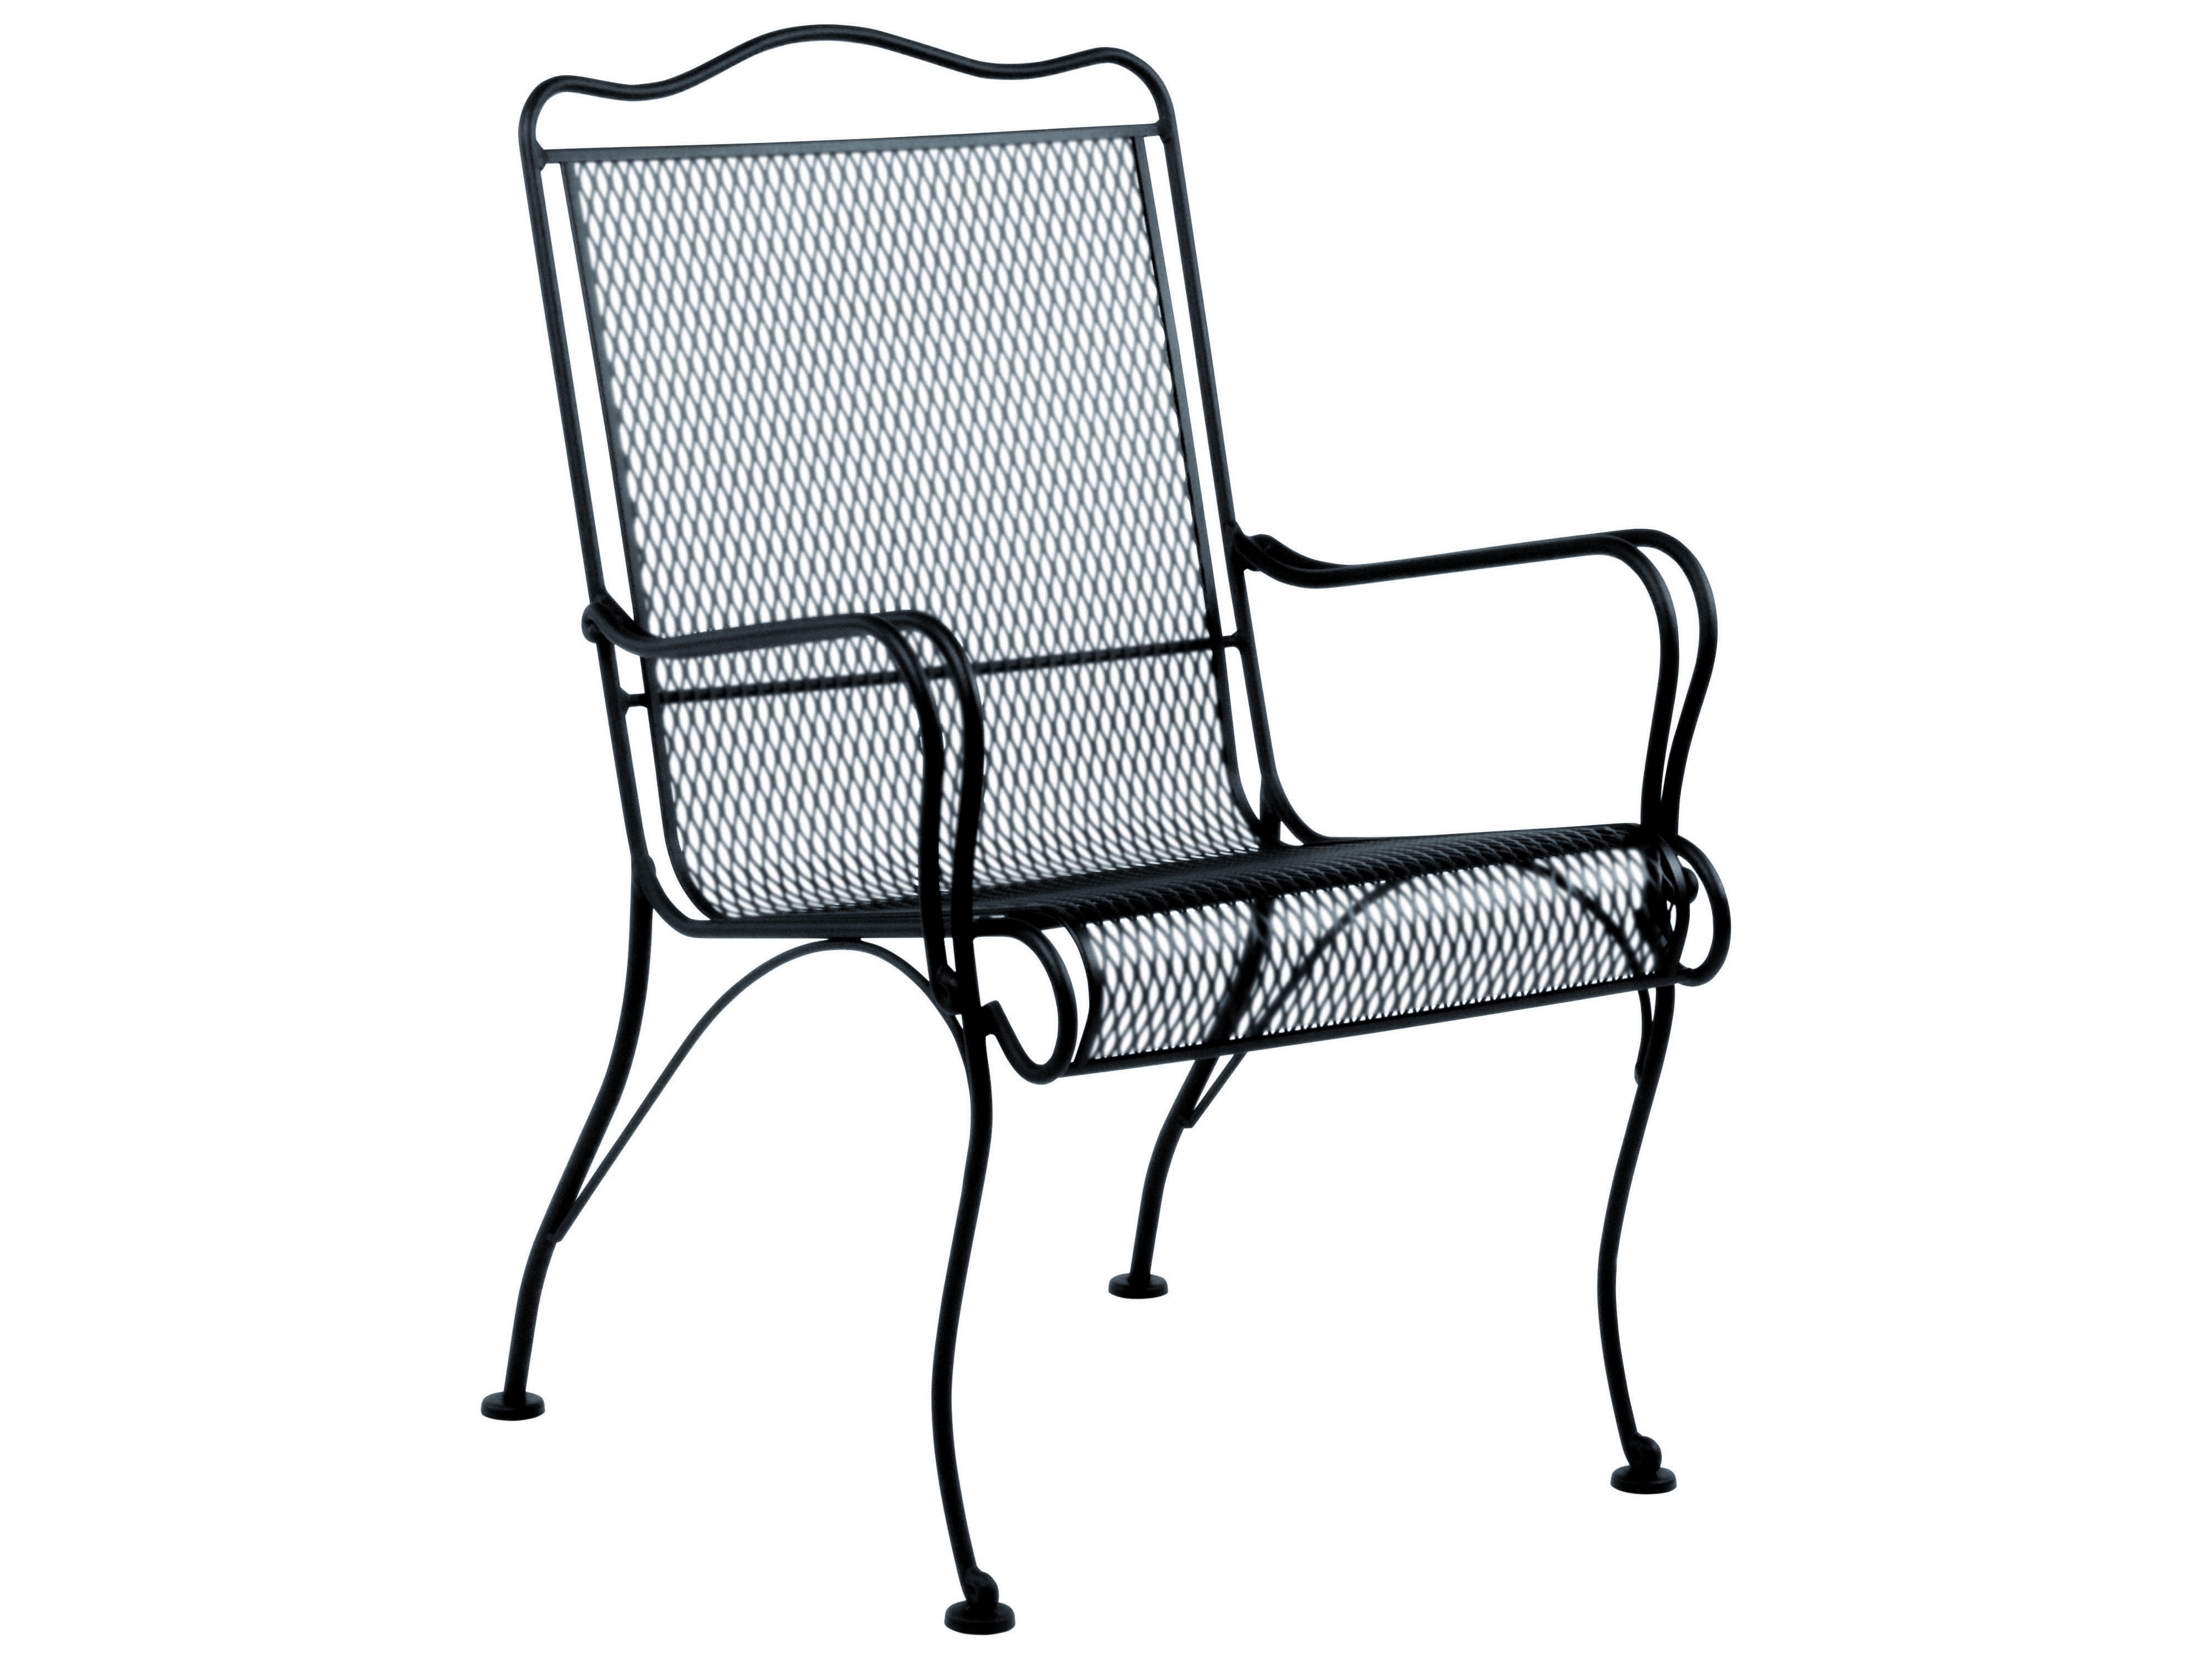 Woodard Tucson Wrought Iron High Back Lounge Chair